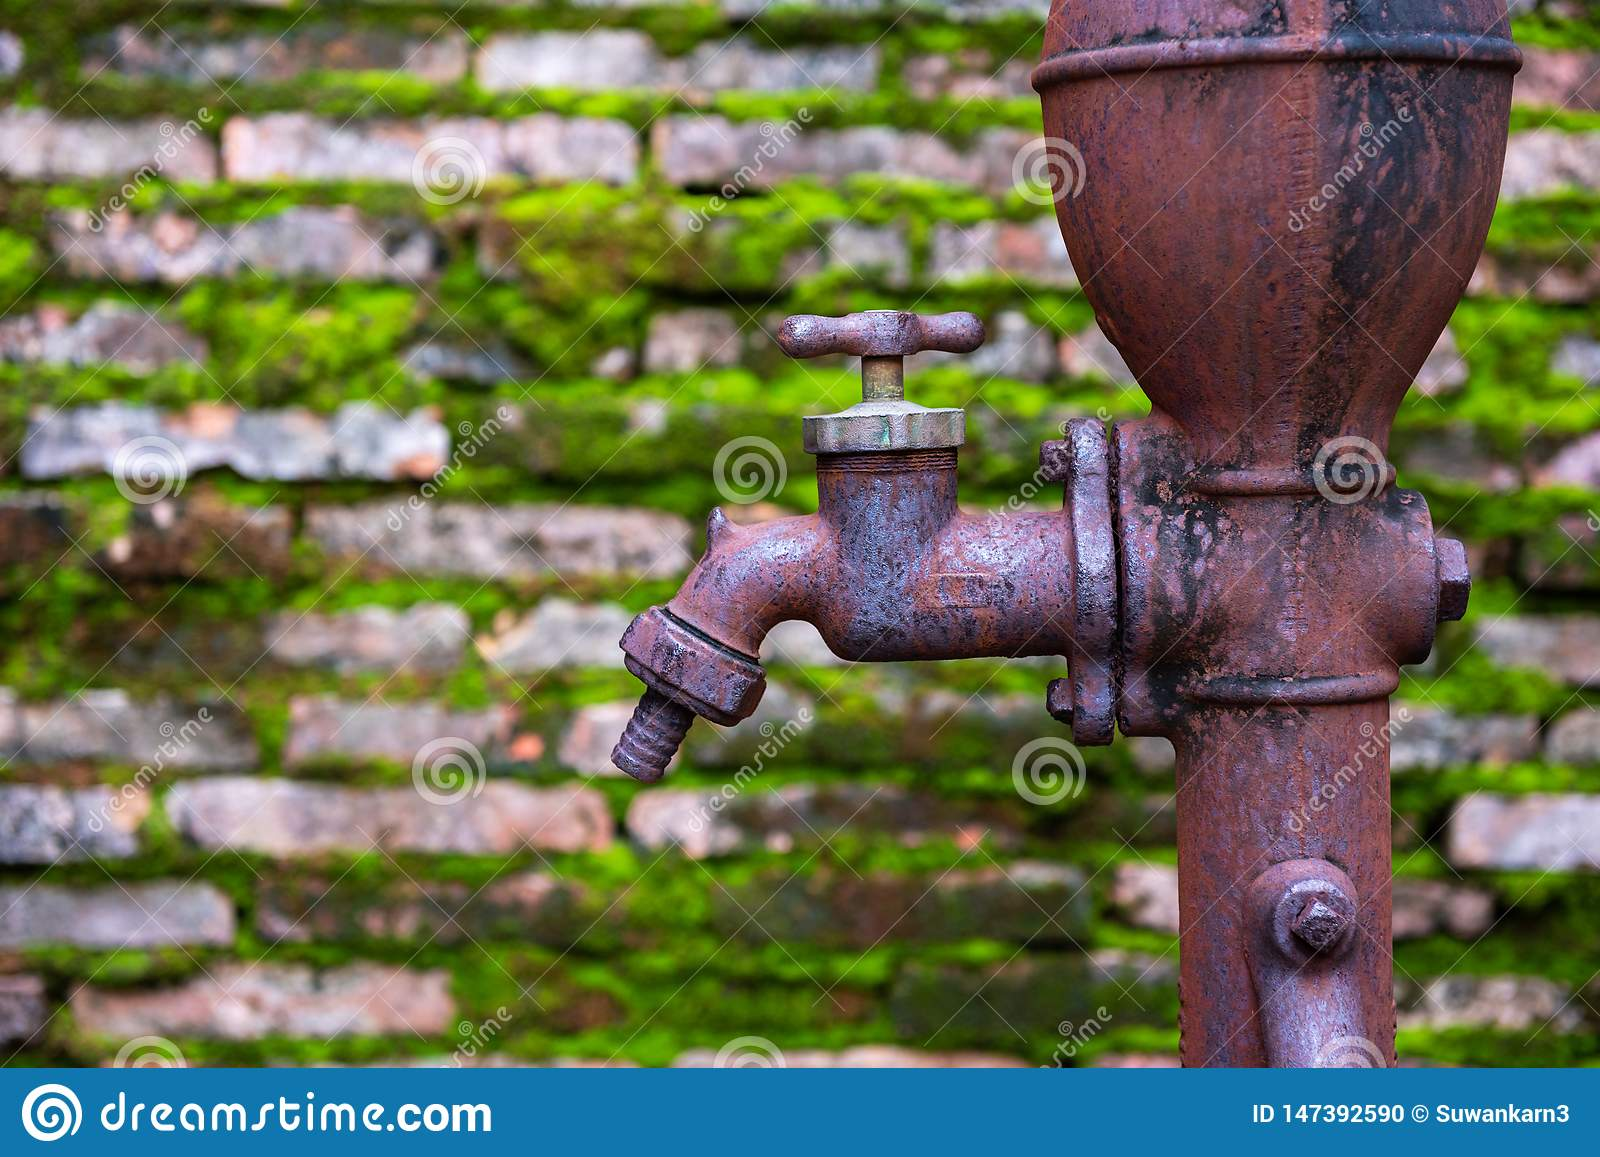 Rusty Old Faucet With Old Brick Wall Stock Photo - Image ...